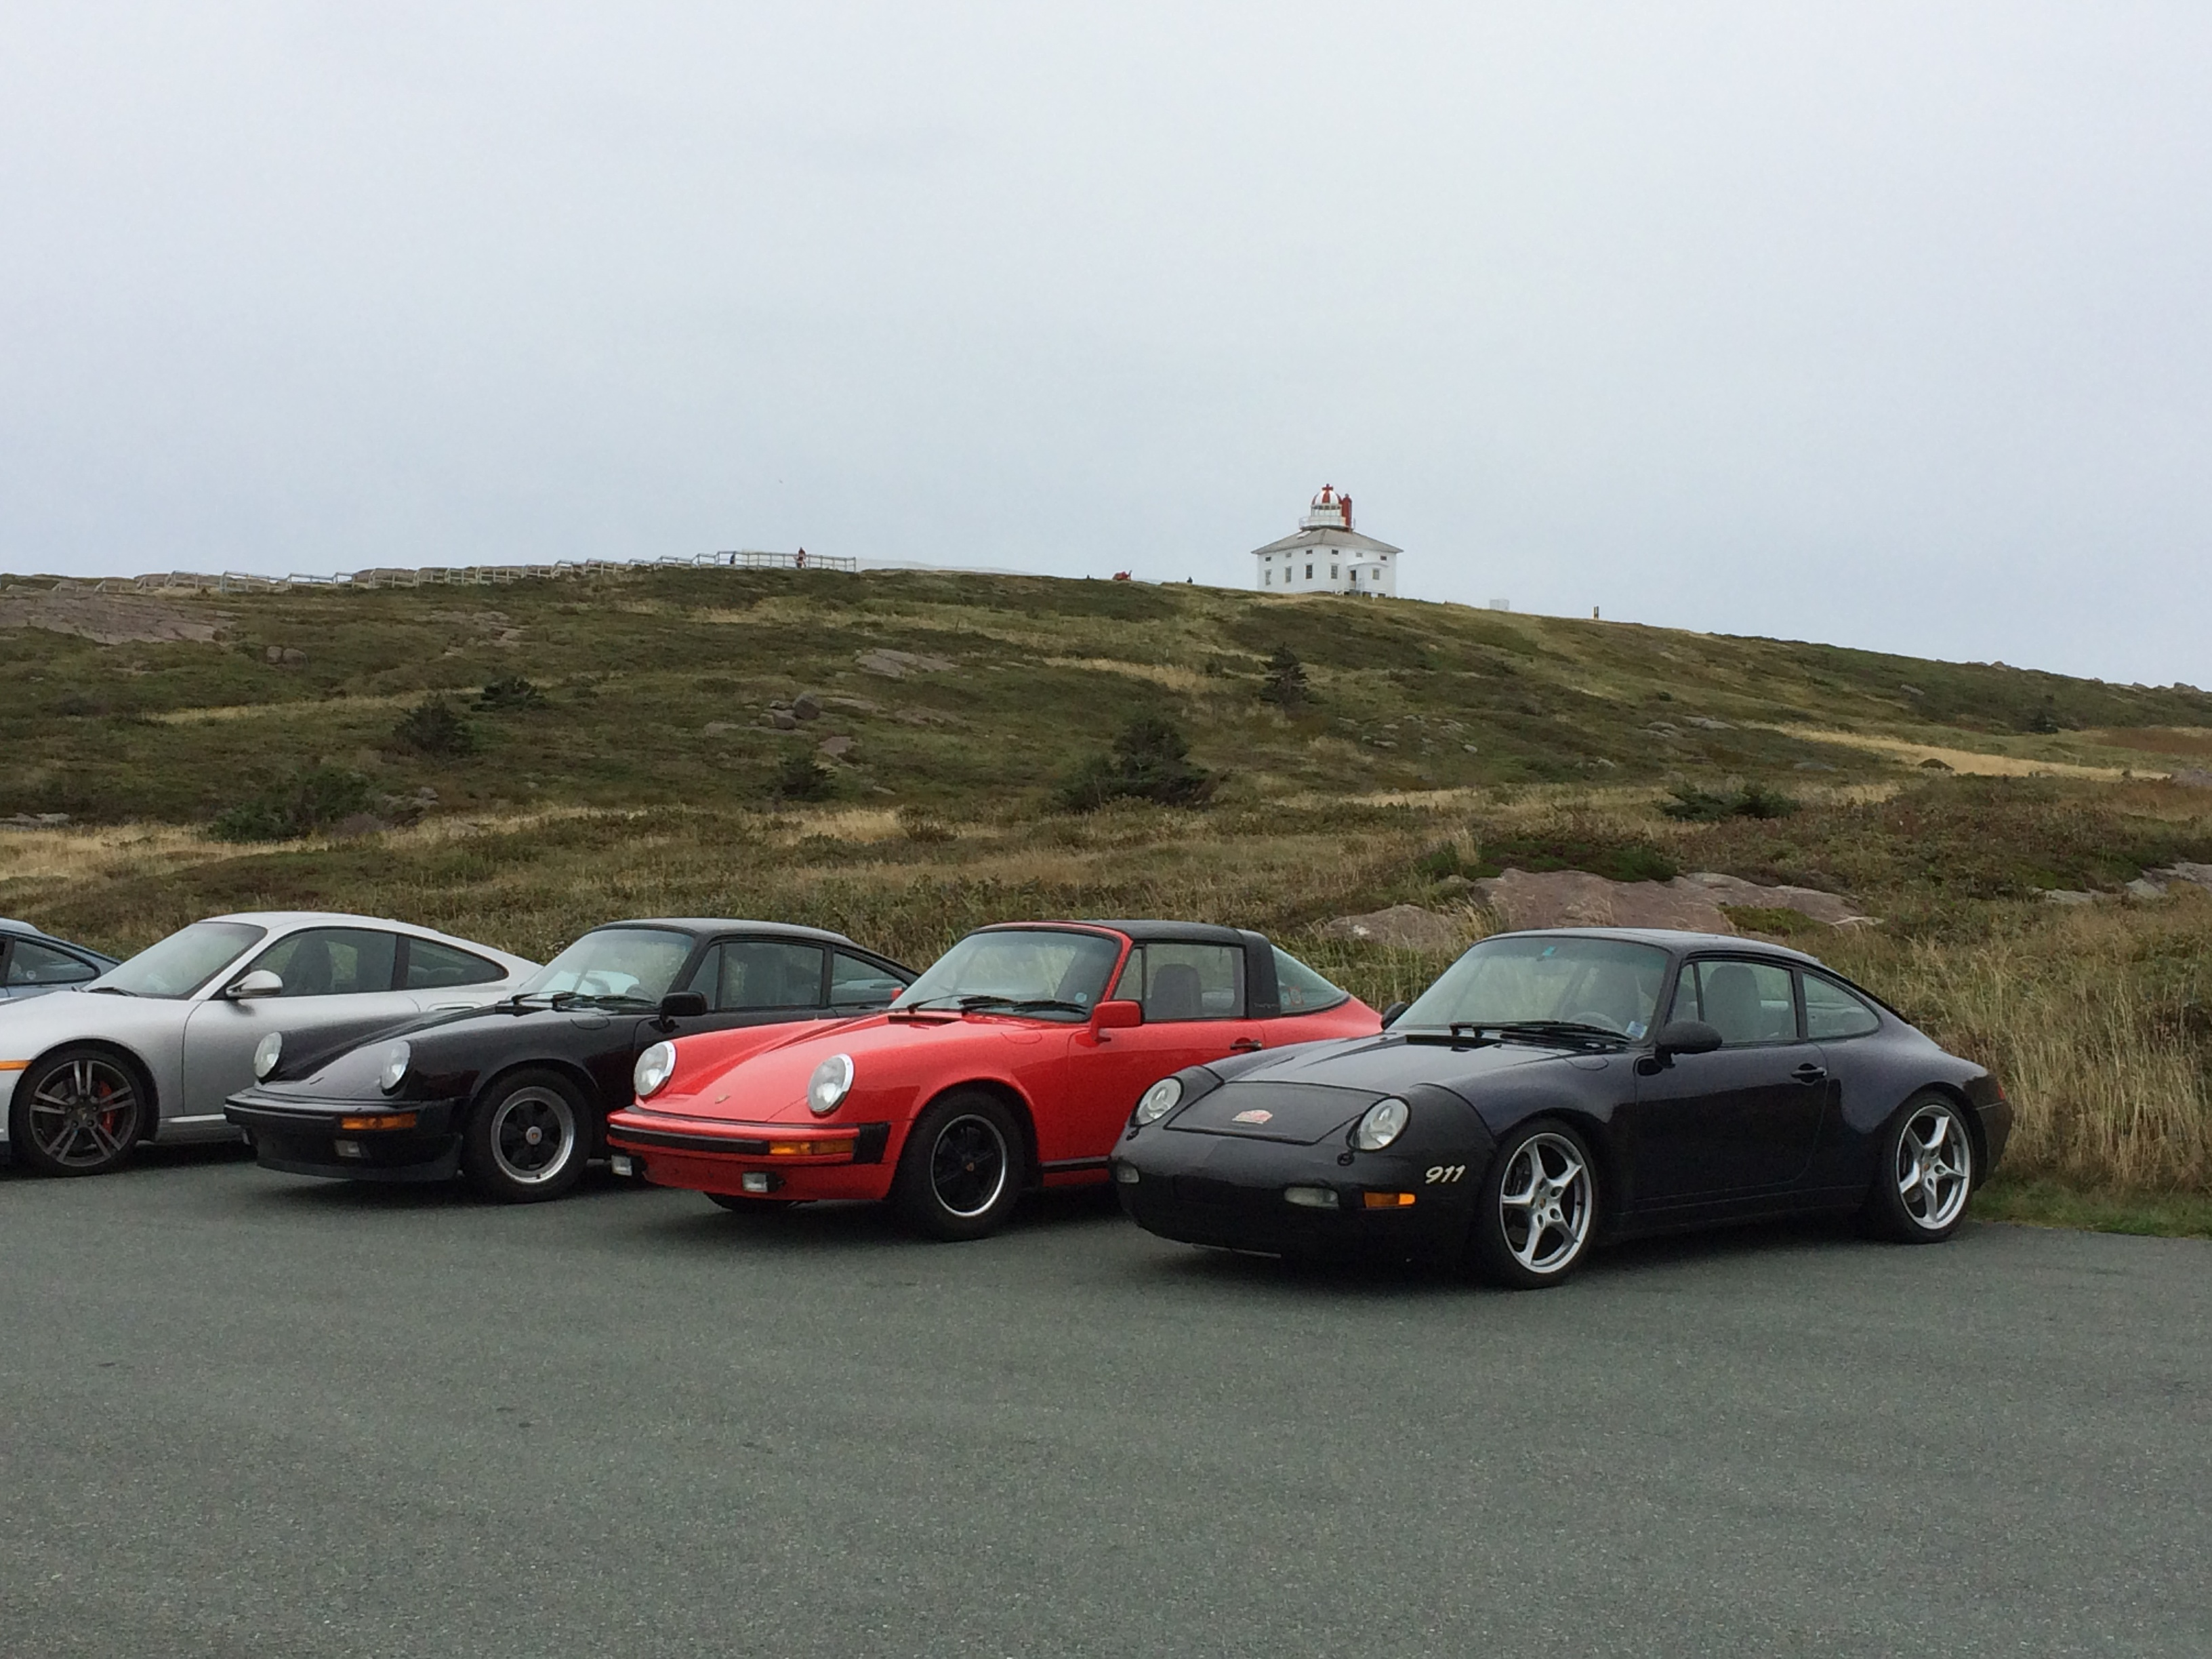 Cape Spear, 2014 NL Tour